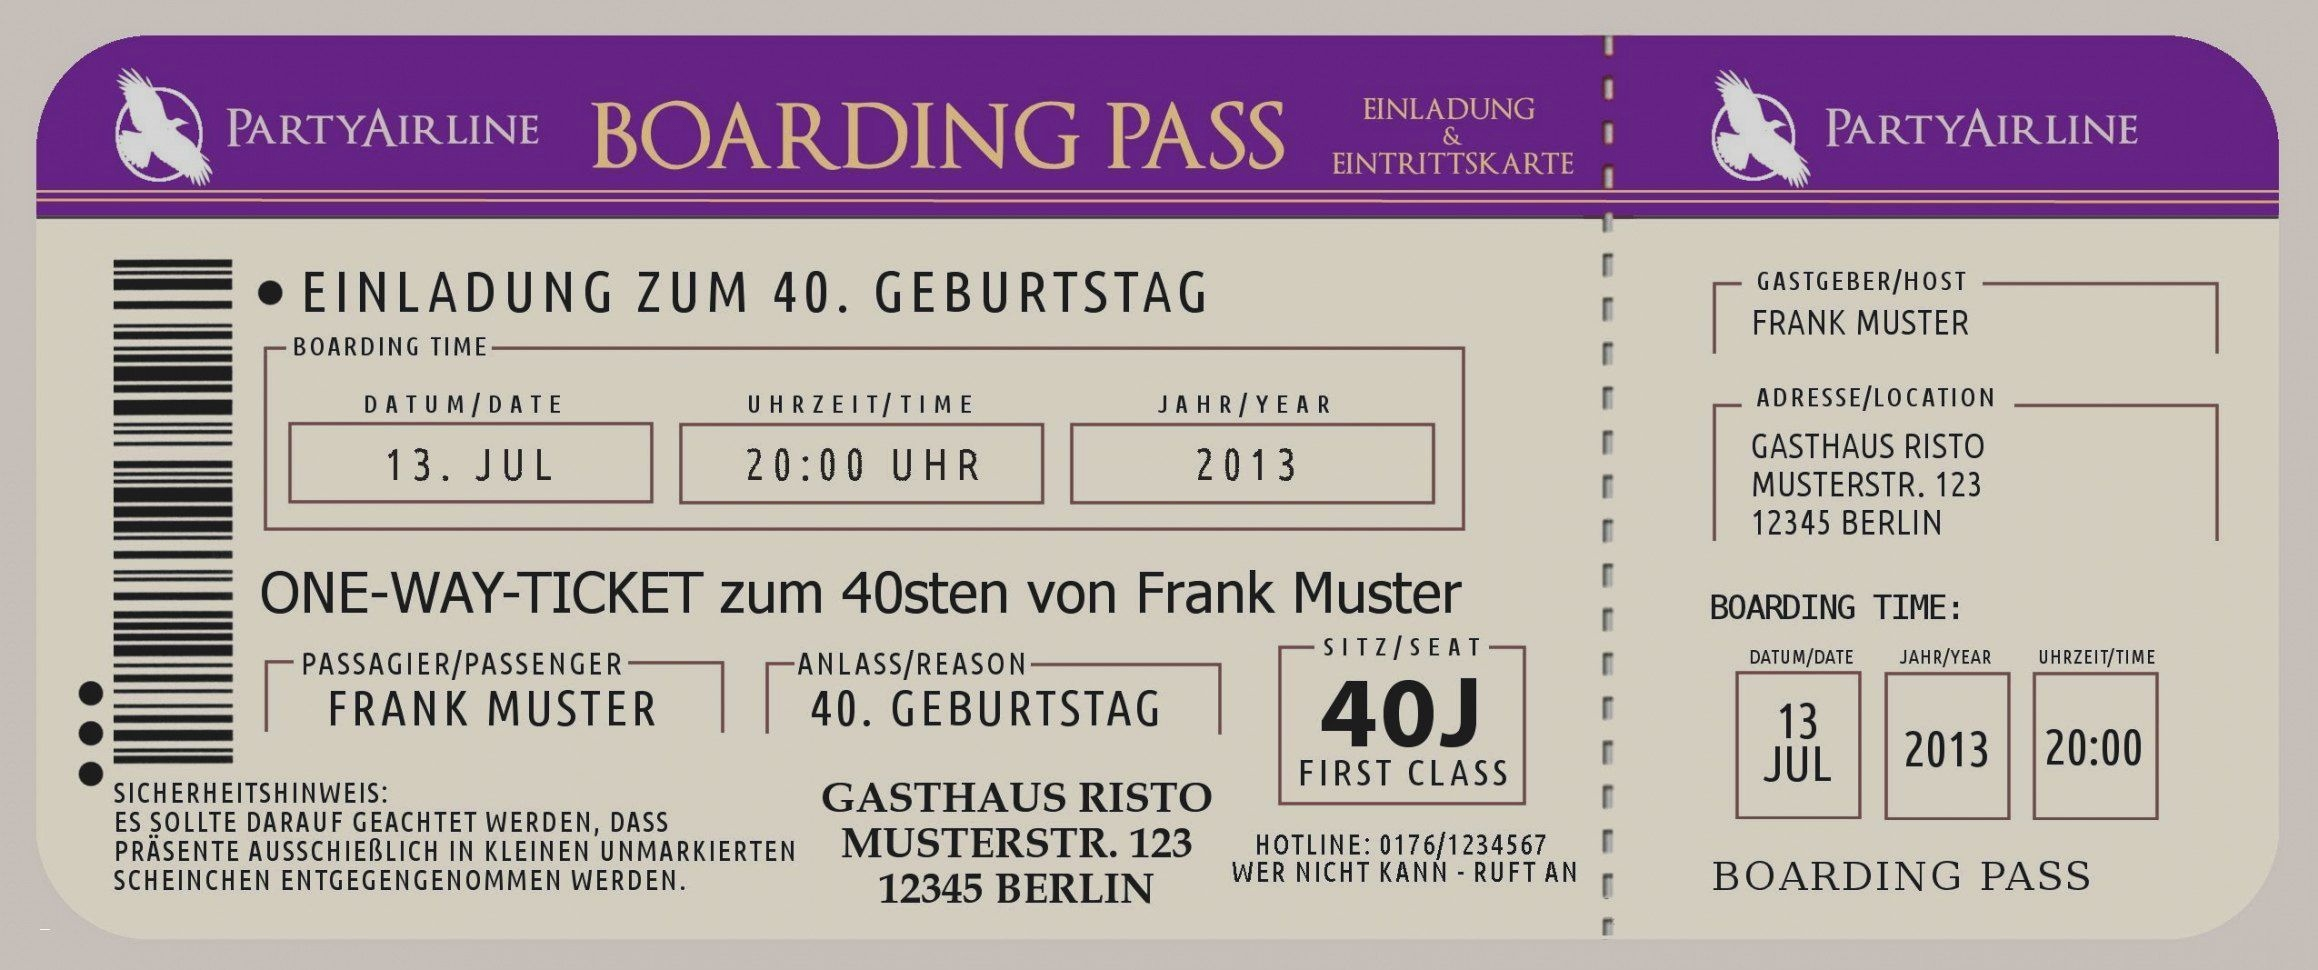 Einladungskarten Boarding Pass Best Cornelia Haase Cornelia1204 On Pinterest